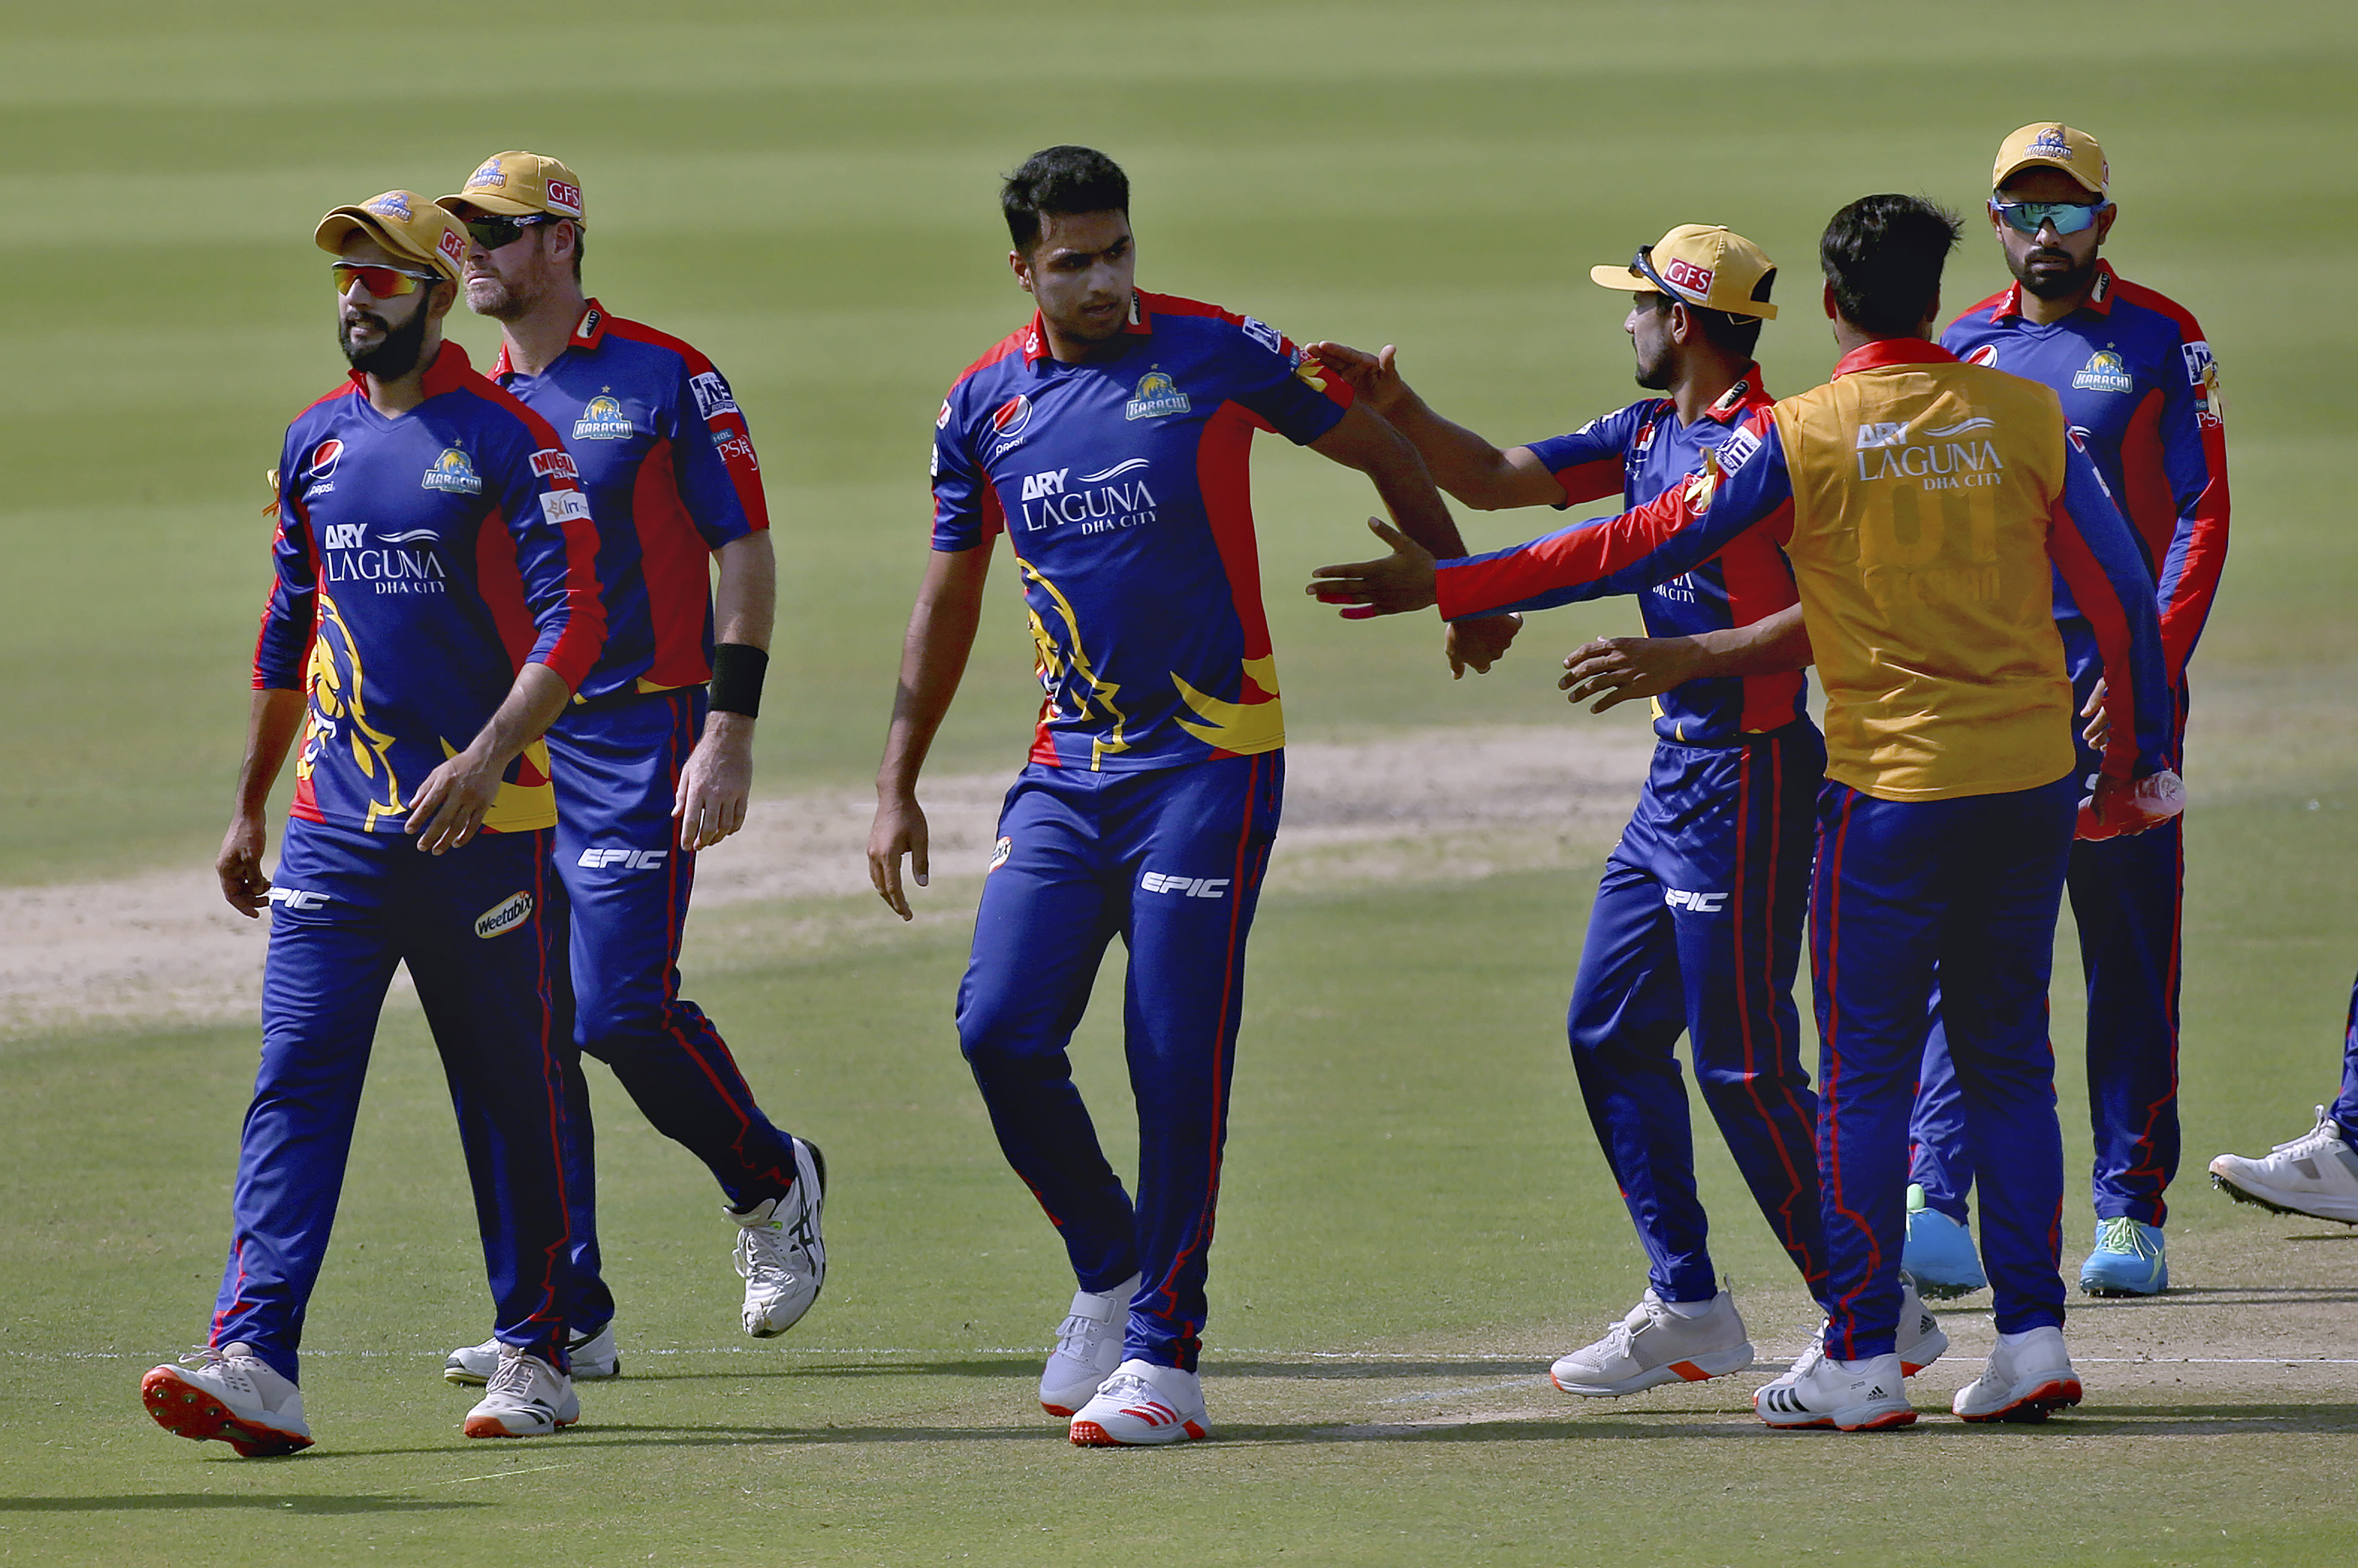 Karachi Kings' Arshad Iqbal, center, celebrates with teammates after taking the wicket of Multan Sultans' James Vince during a Pakistan Super League T20 cricket match between Karachi Kings and Multan Sultans at the National Stadium, in Karachi, Pakistan, Saturday, Feb. 27, 2021. (AP Photo/Fareed Khan)